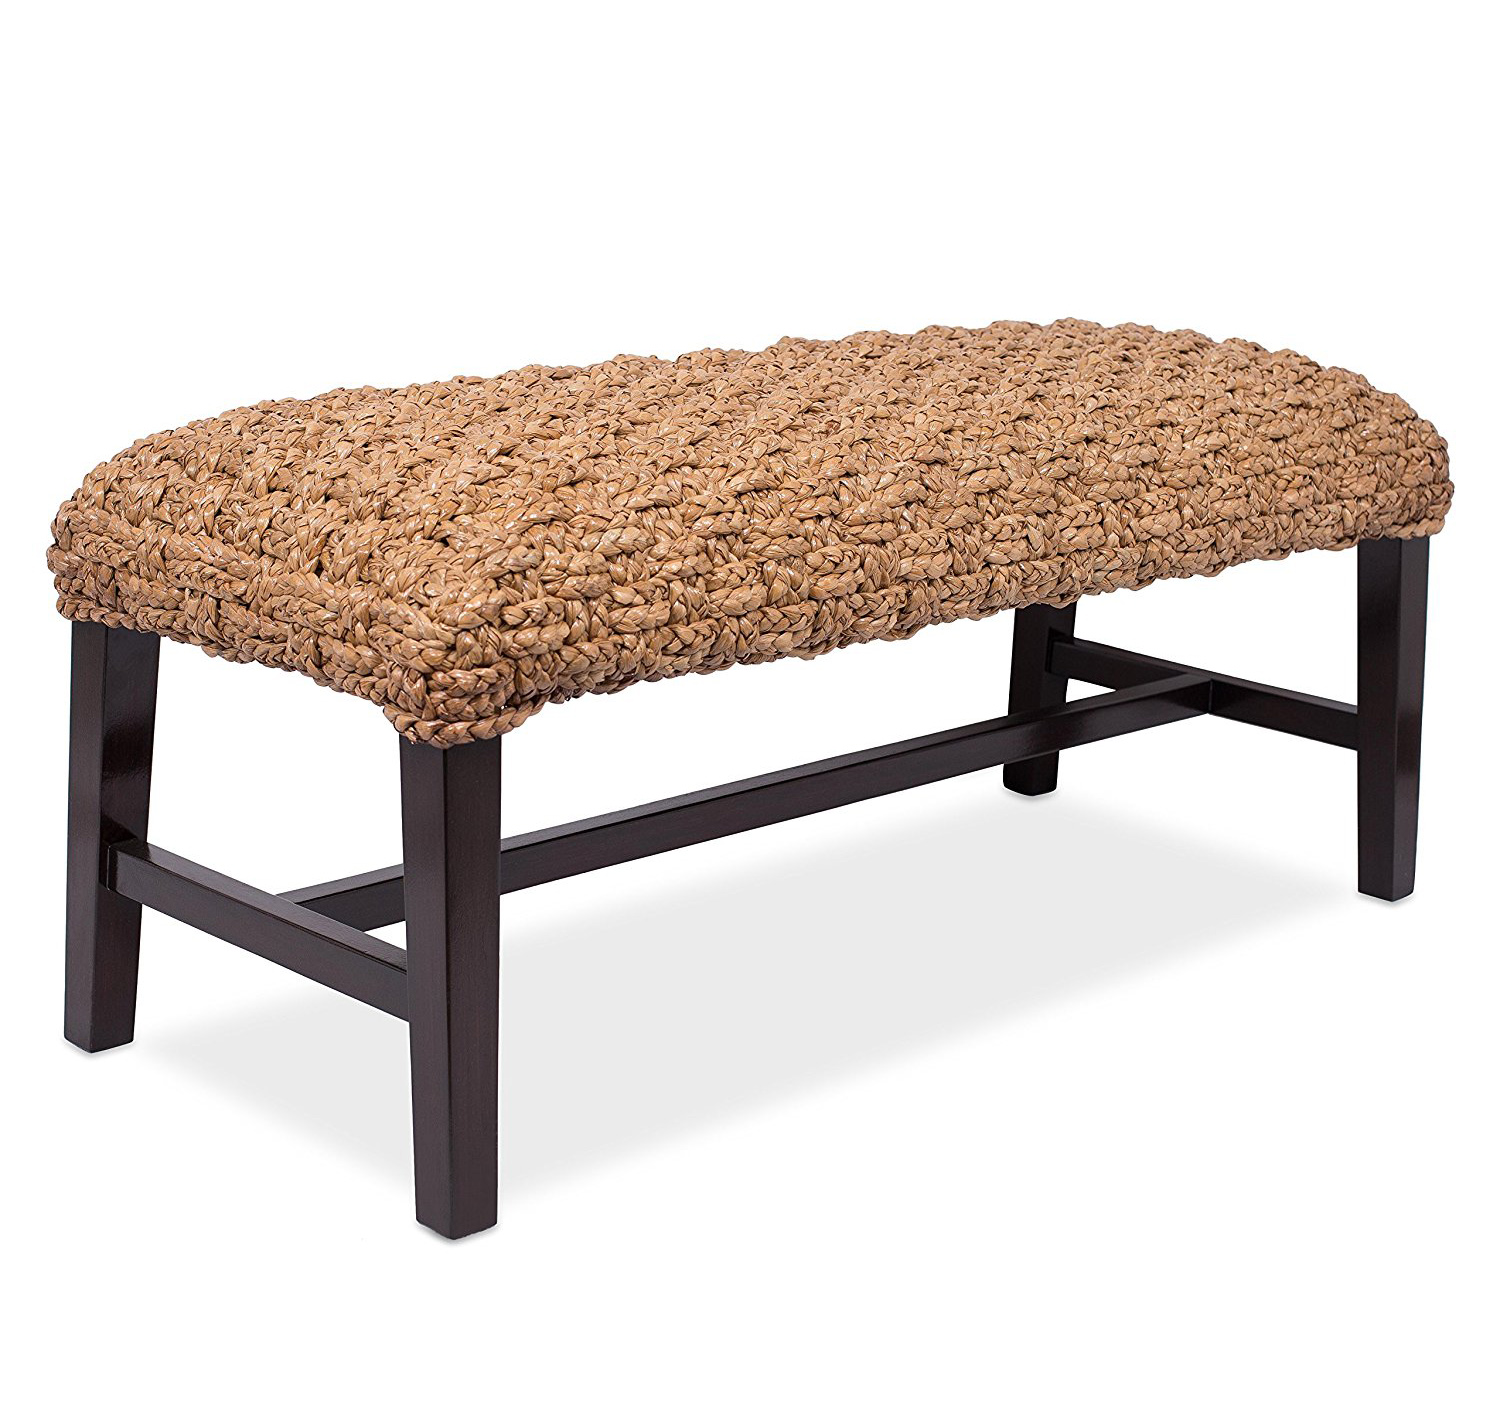 Hand Braided Seagrass Bench Philippine Furniture Wholesale And Retail Buying Guide Part 1